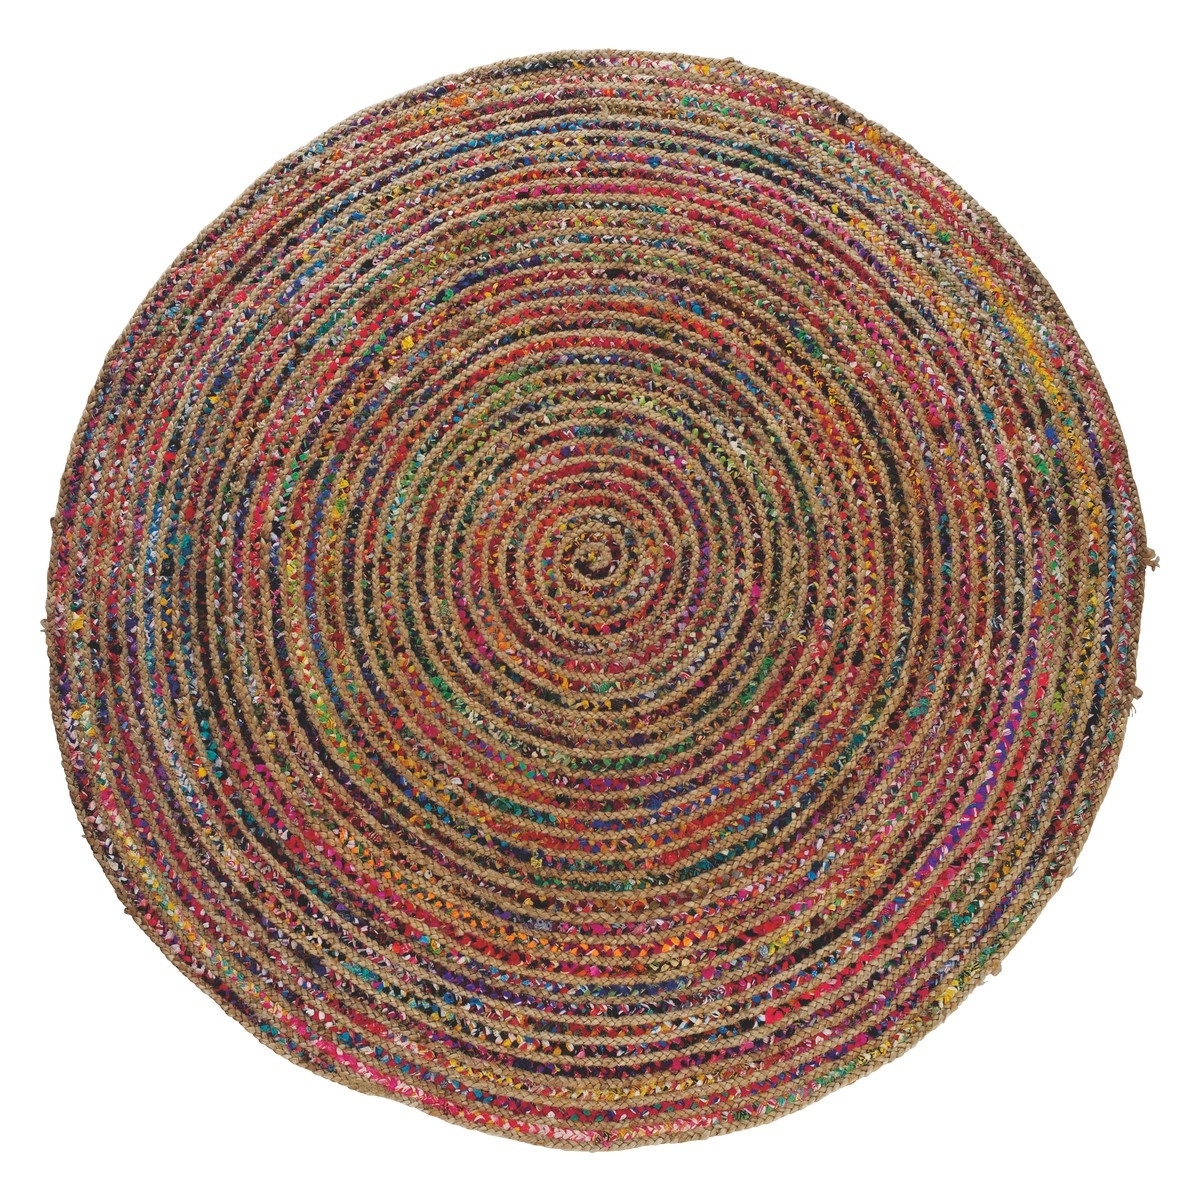 Where To Buy Round Rugs Roselawnlutheran With Regard To Circular Carpets (Image 15 of 15)